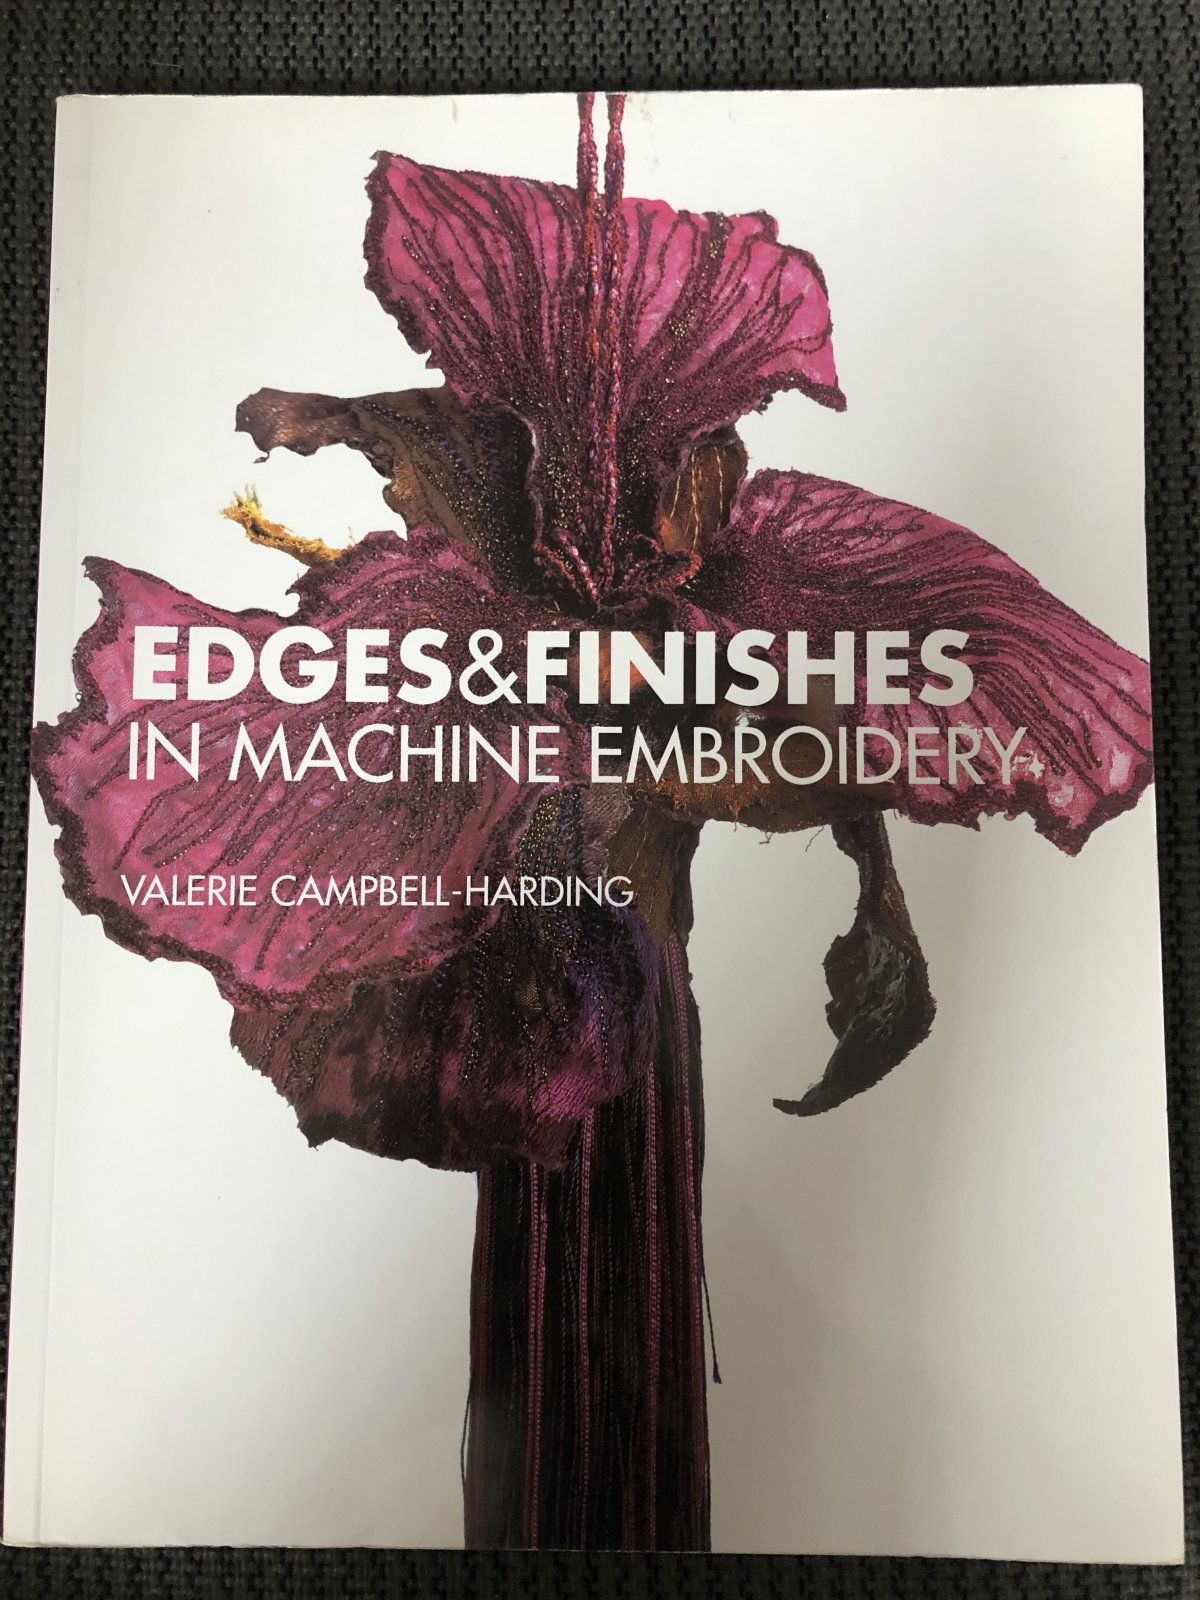 Edges & Finishes In Machine Embroidery